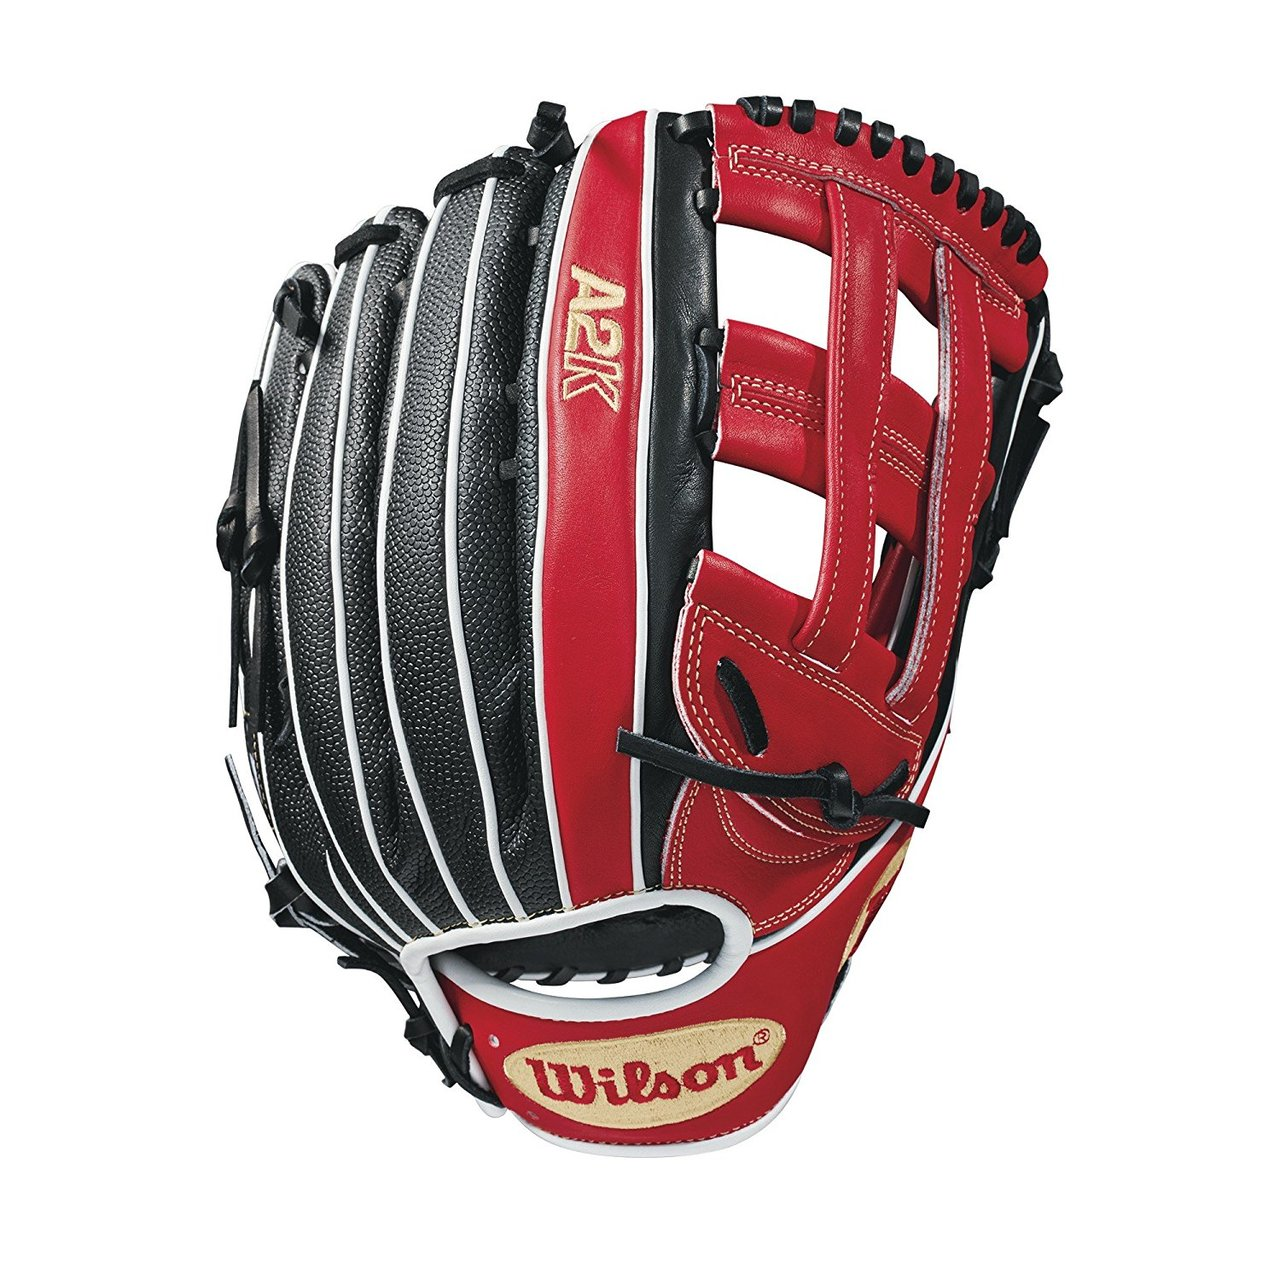 wilson-2018-mookie-betts-game-model-baseball-glove-right-hand-throw WTA2KRB18MB50GM-RightHandThrow Wilson 887768614454 12.75 dual post web - game WTA2KRB18MB50GM for Mookie bets Red